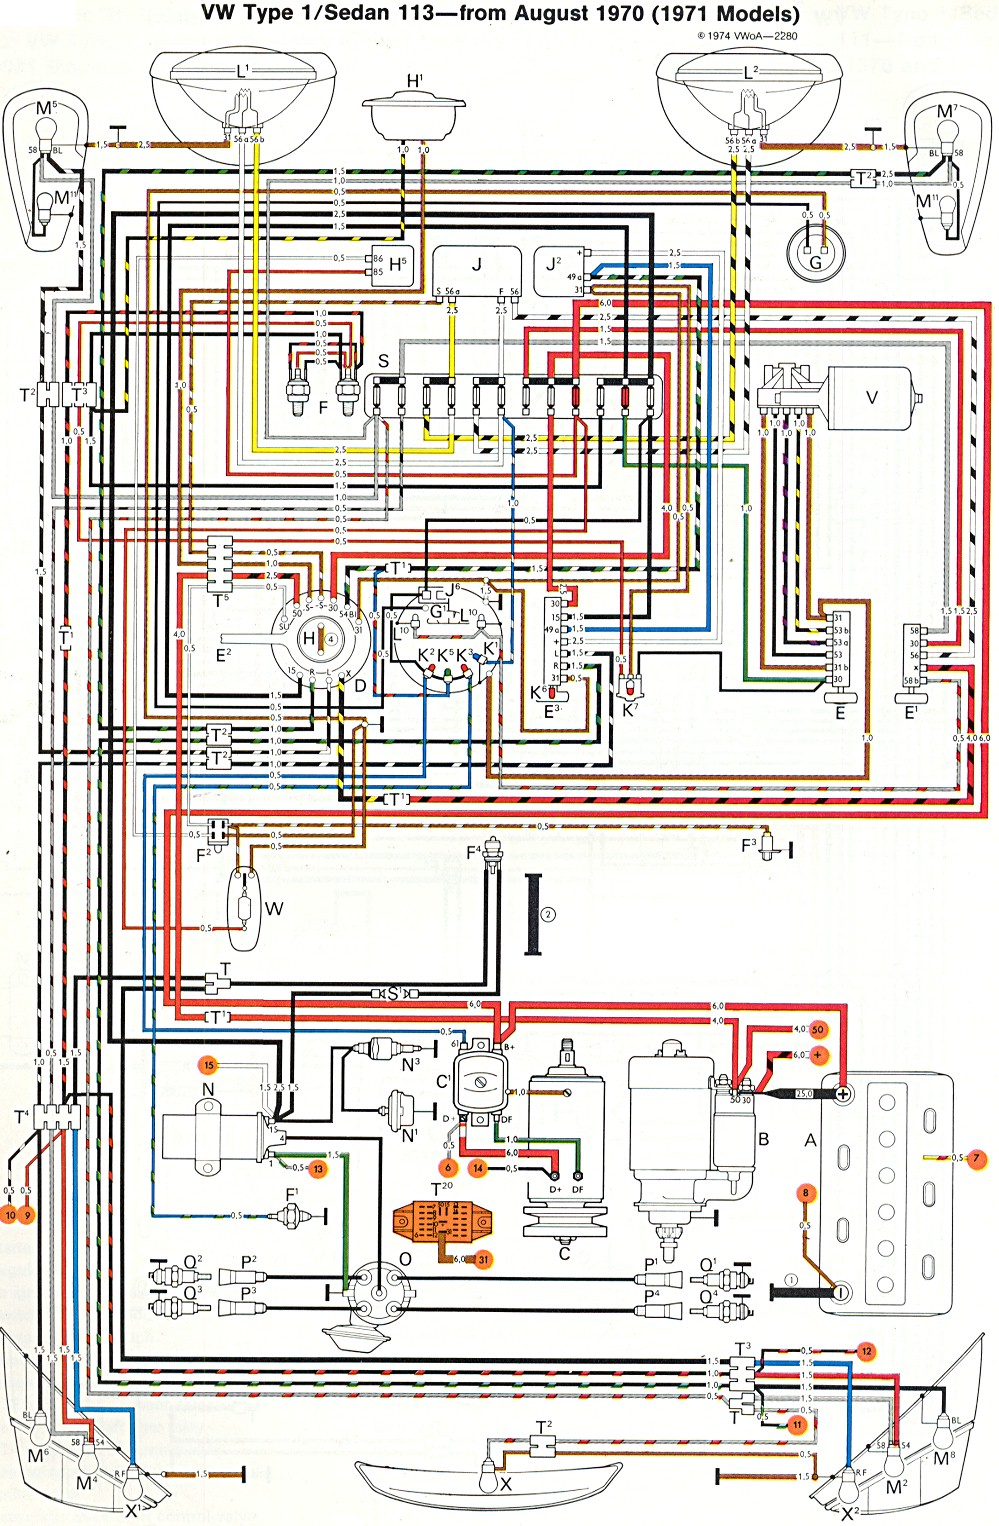 bug_super_71 1971 super beetle wiring diagram thegoldenbug com 1968 vw bug headlight wiring diagram at metegol.co